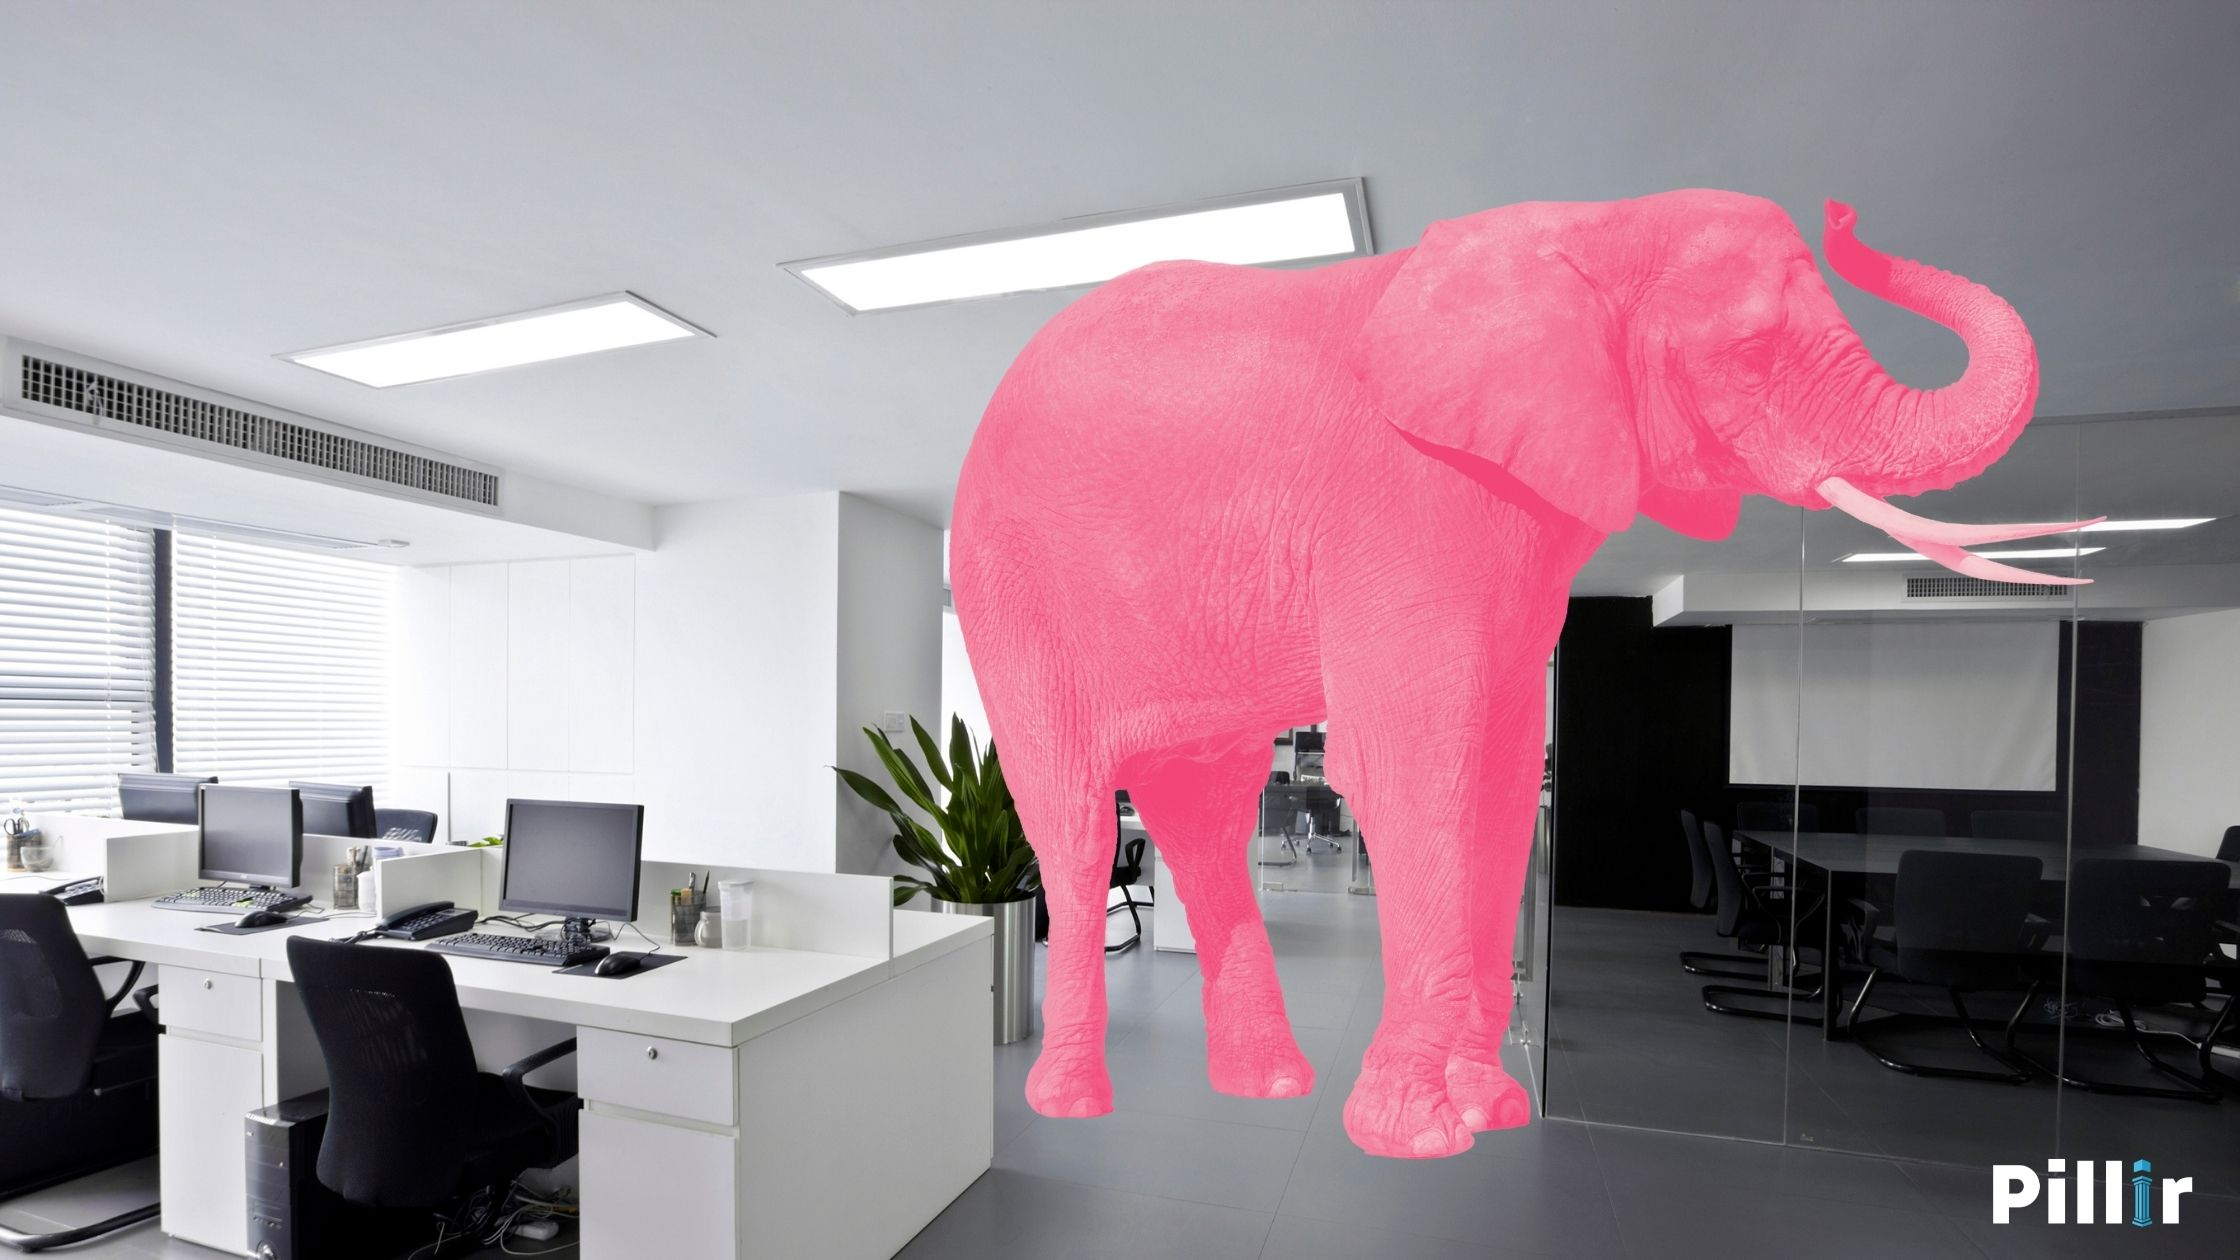 SAP's pink elephant in the room